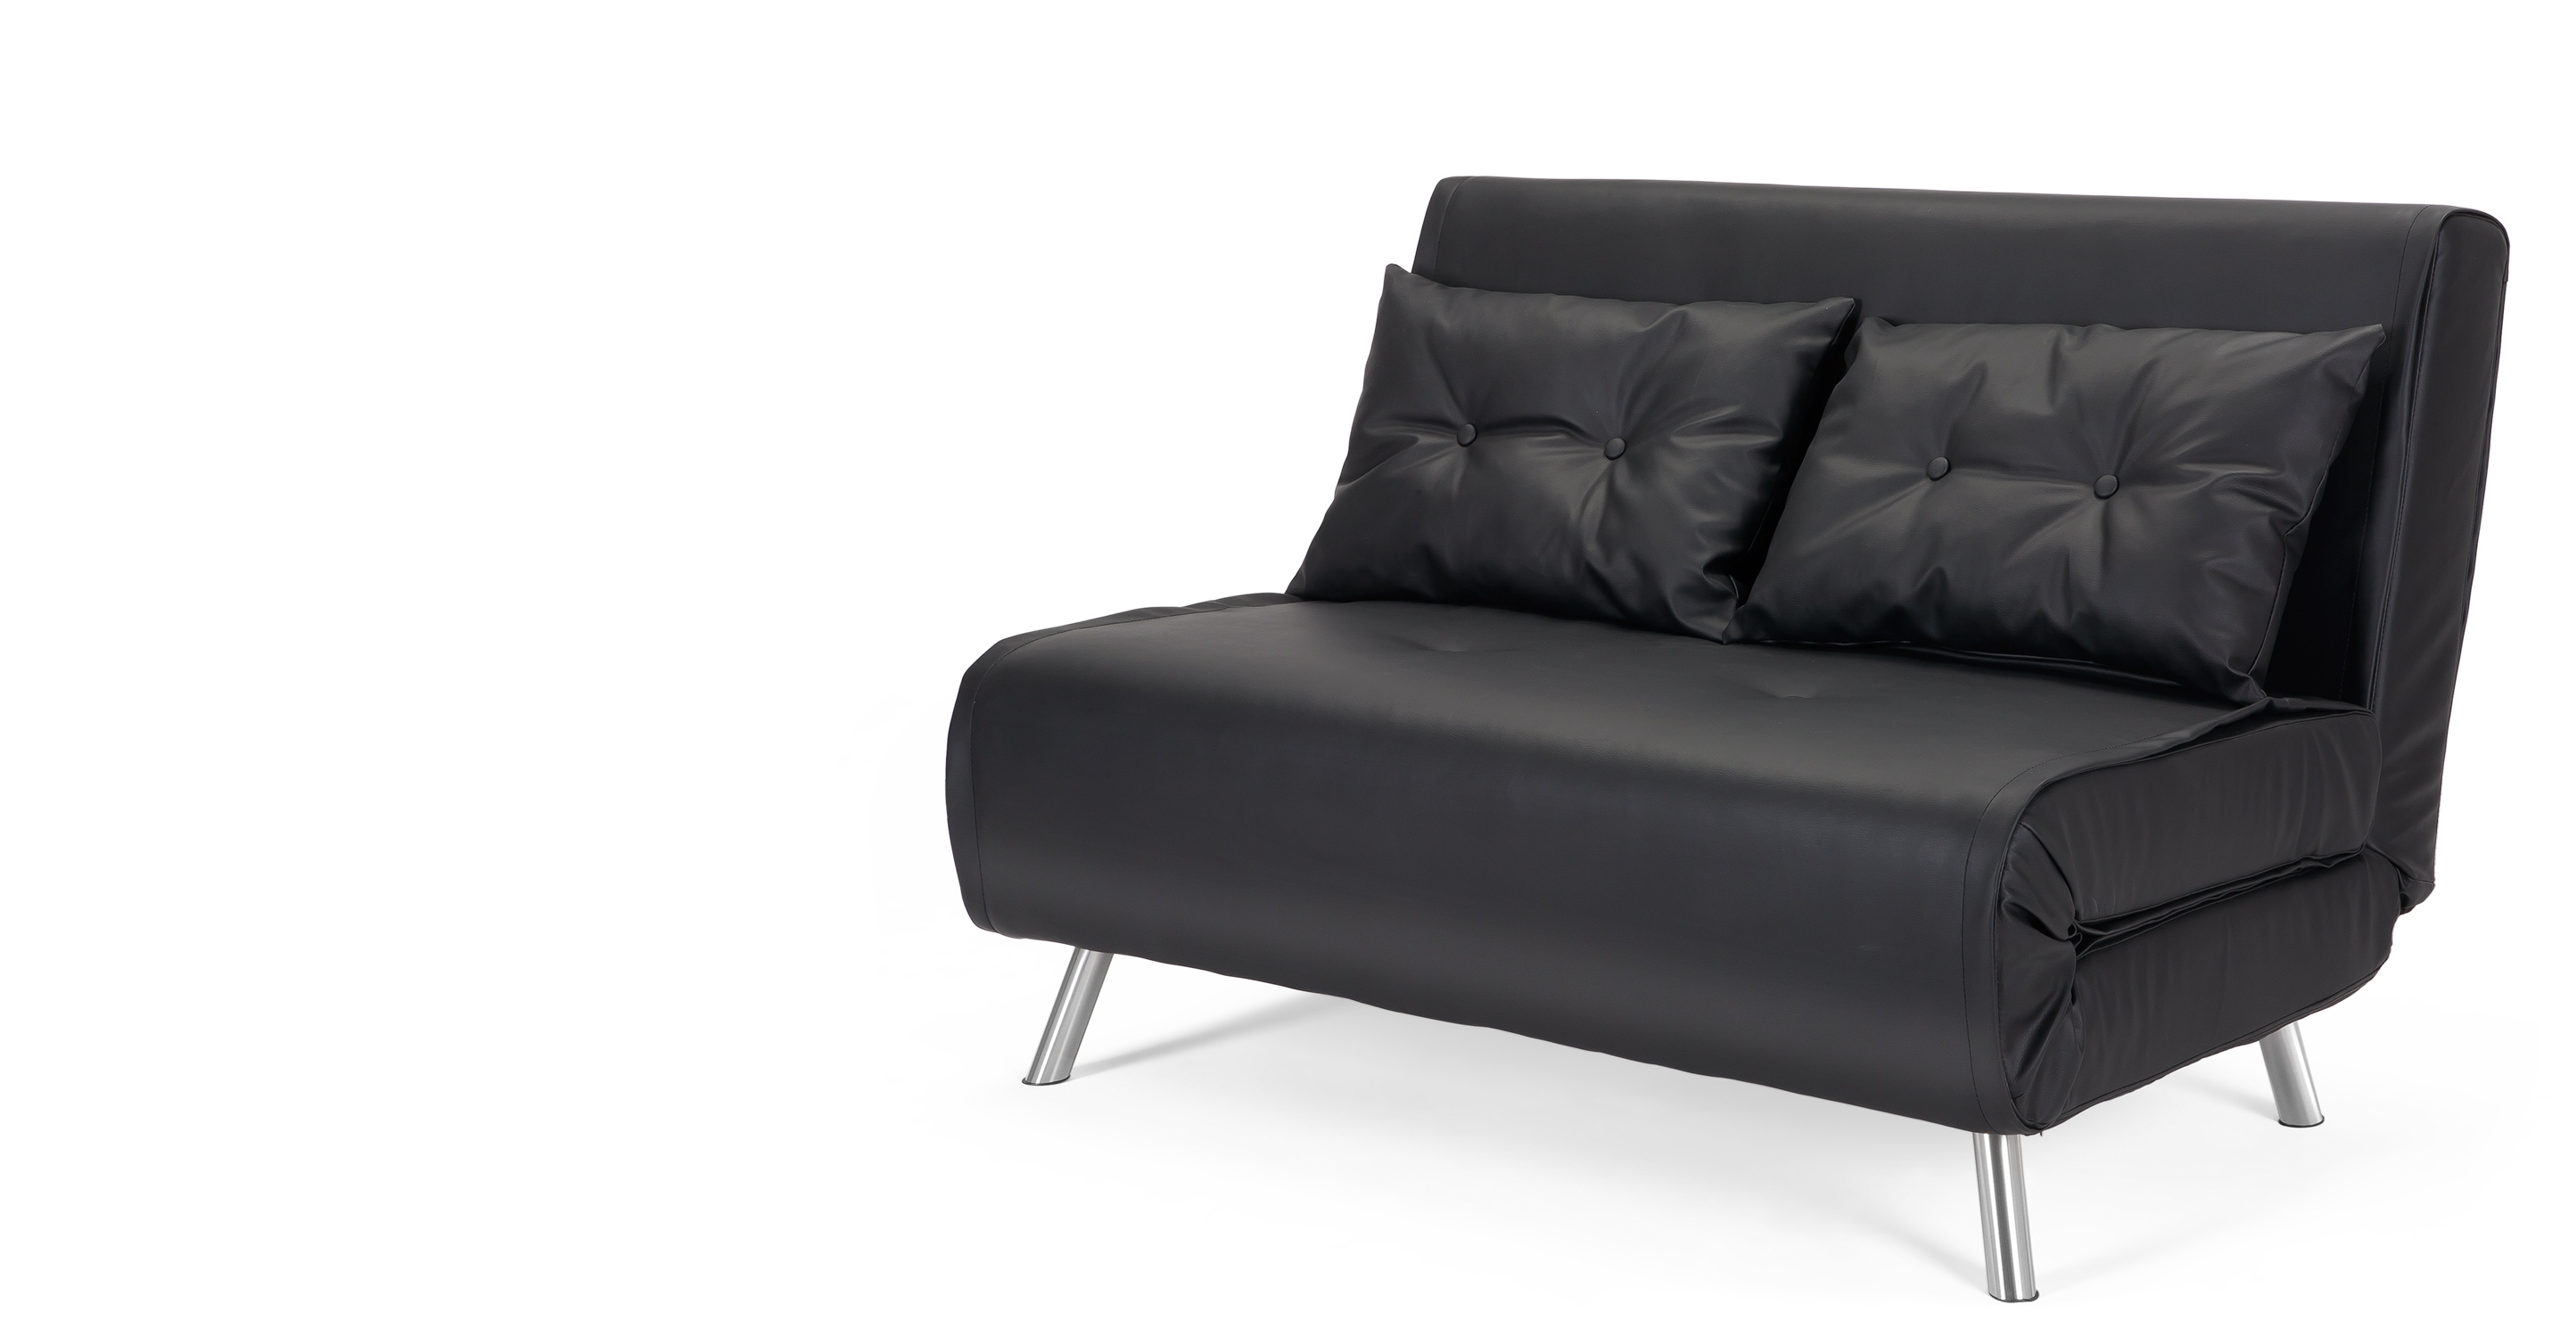 Superb Comfortable Couch Bed Black Leather Upholstery Tufted Within Small Sofas And Chairs (Image 14 of 15)